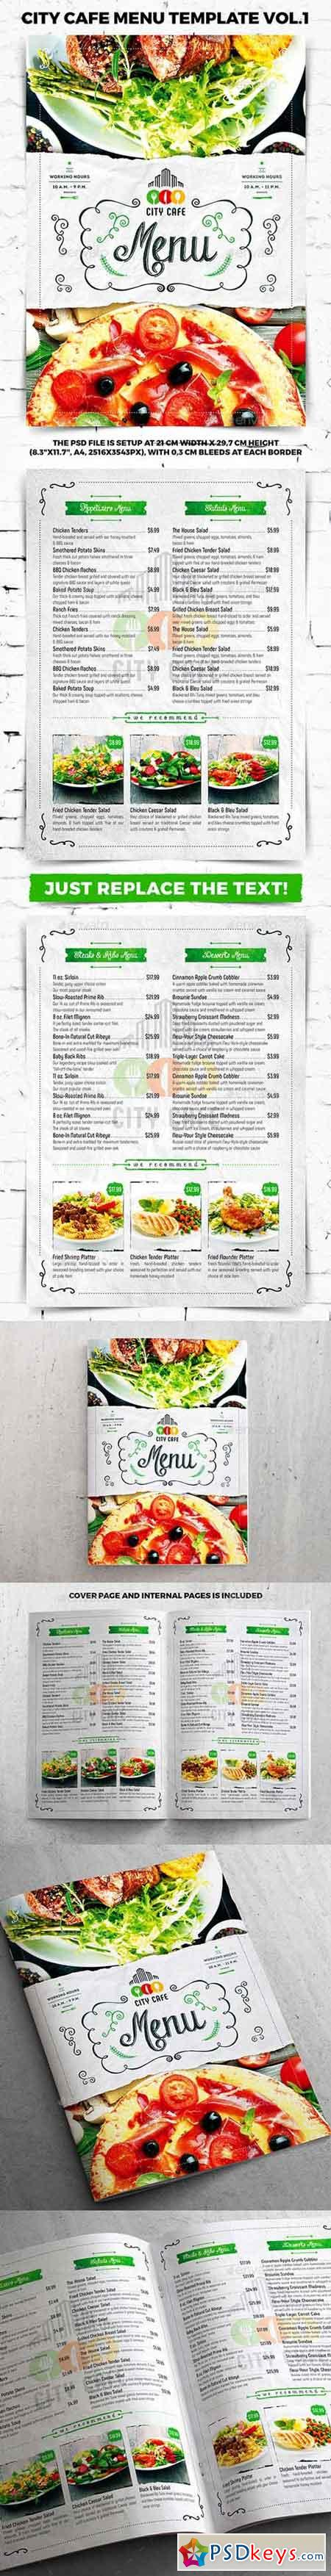 City Cafe Menu Template vol.1 20520551